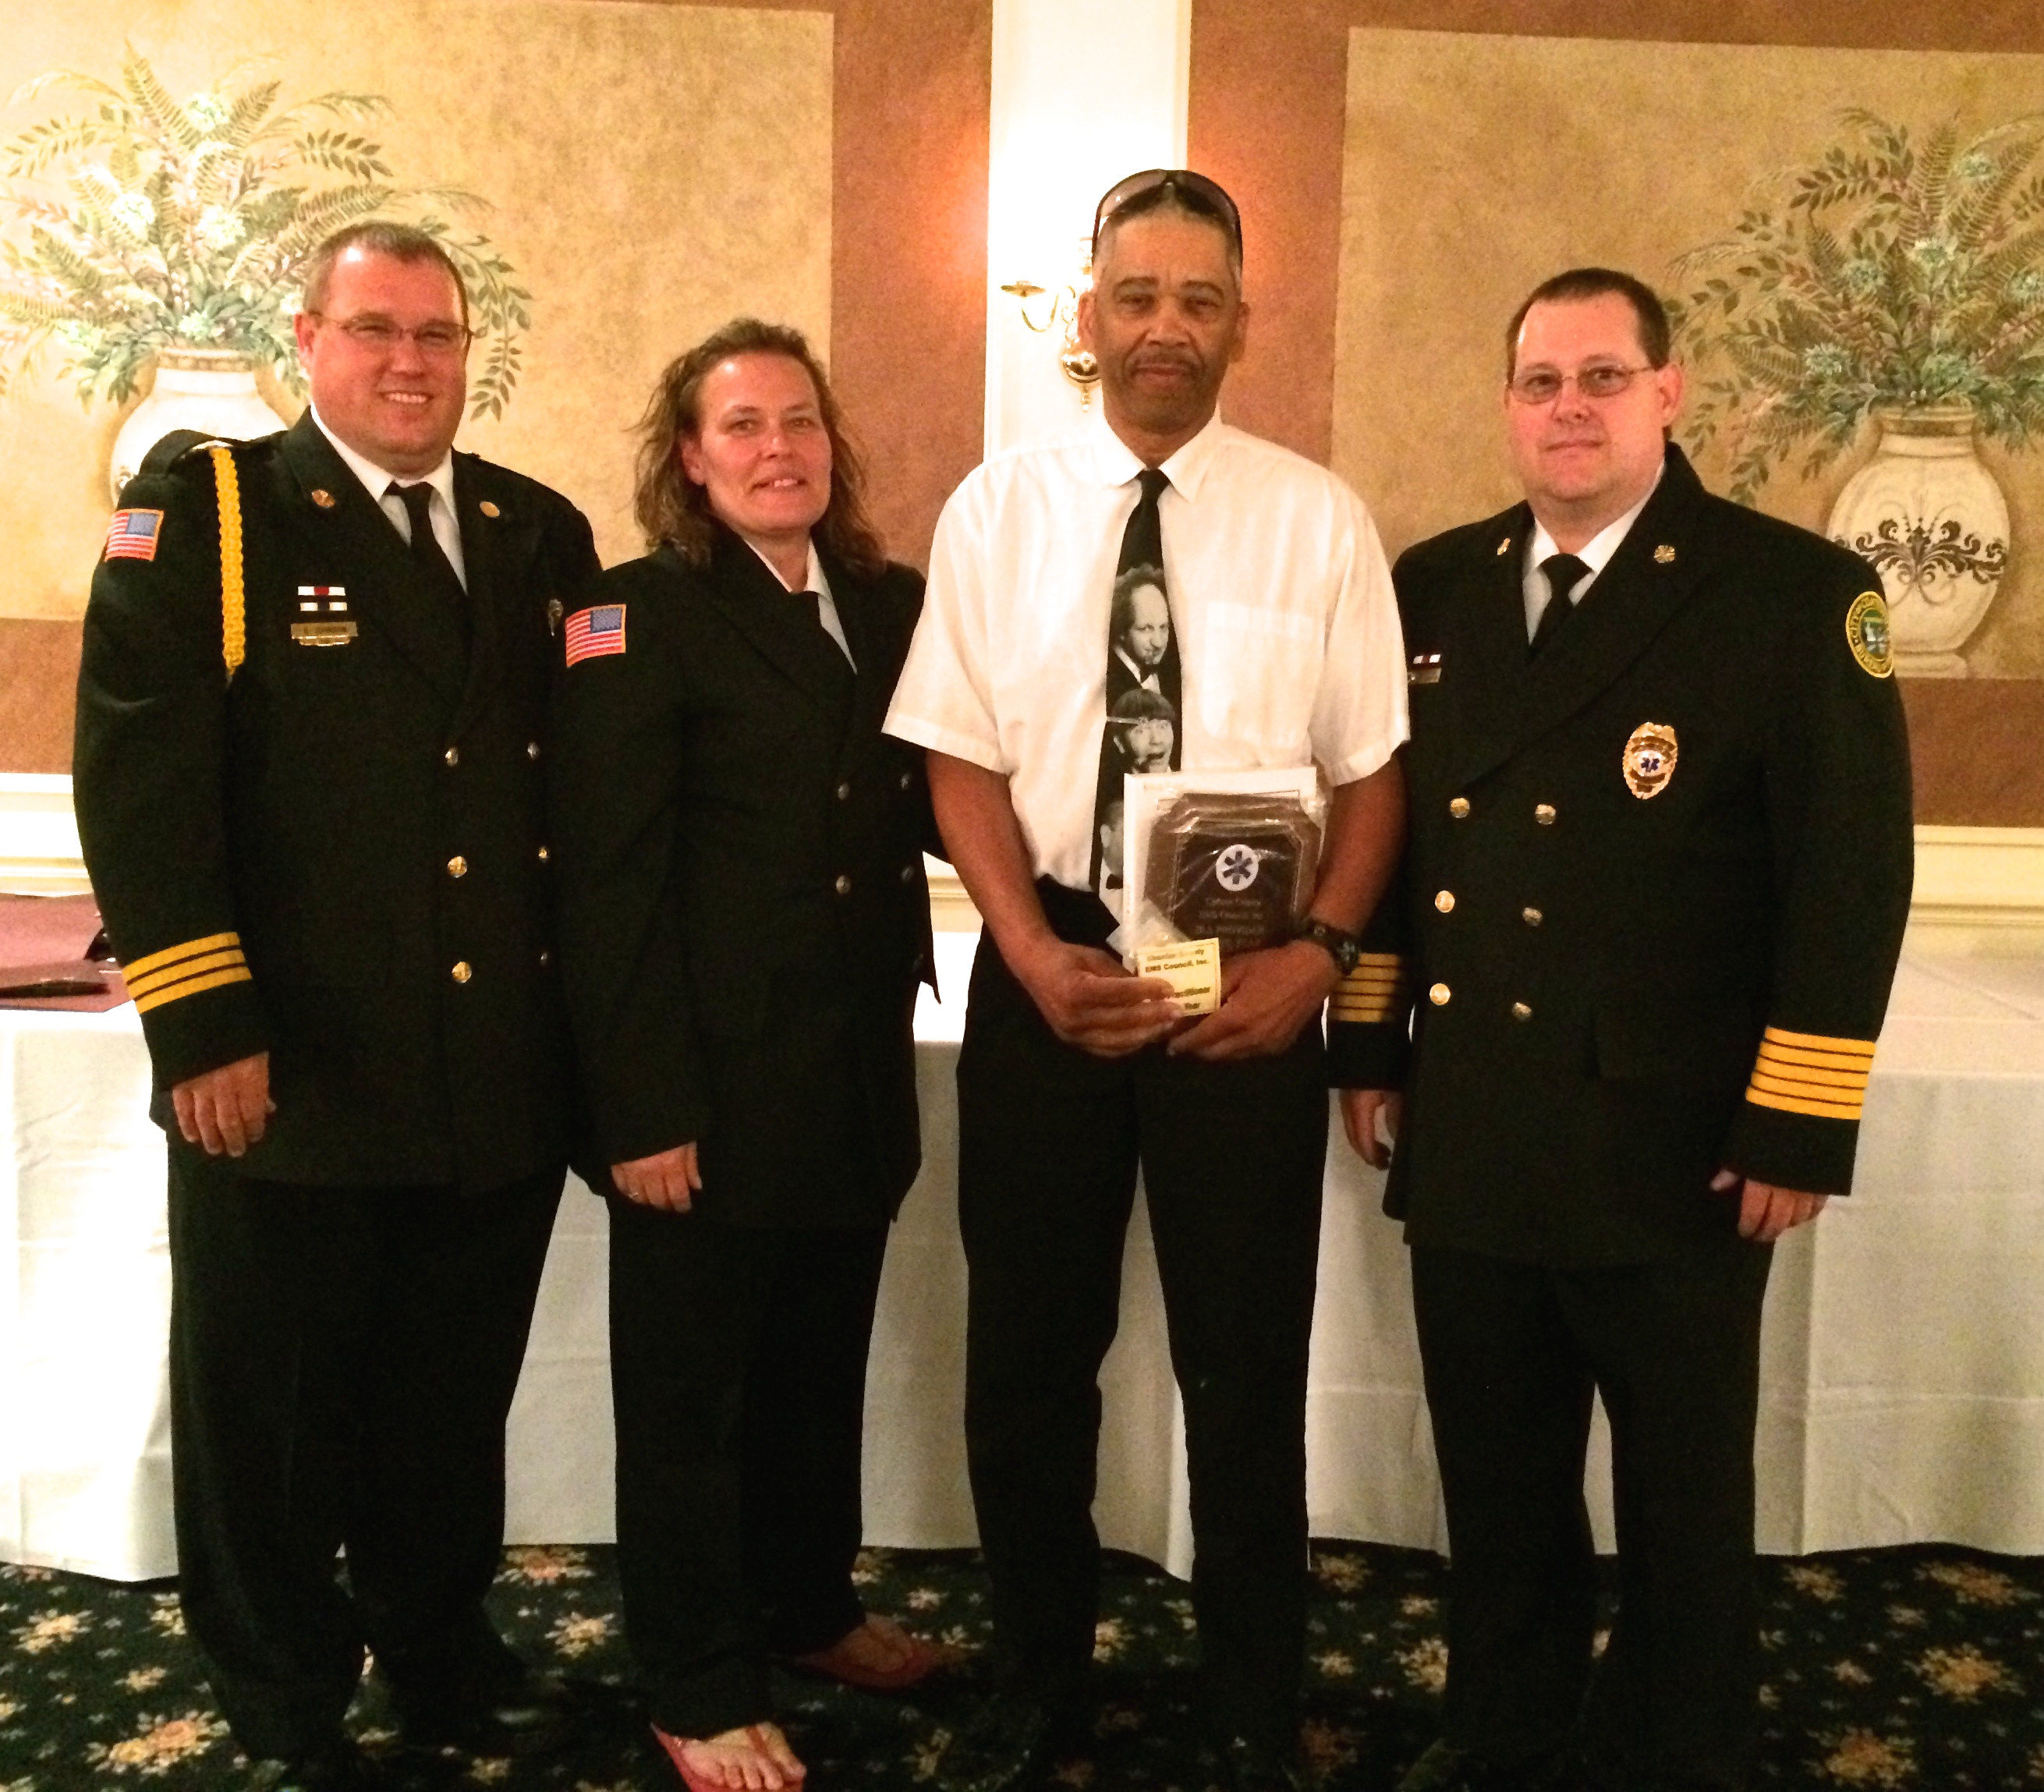 Earl Taylor (third from left), a member of the Washington Hose Co. who also works as a deejay,  poses with EMS officials after receiving the BLS Provider of the Year award.